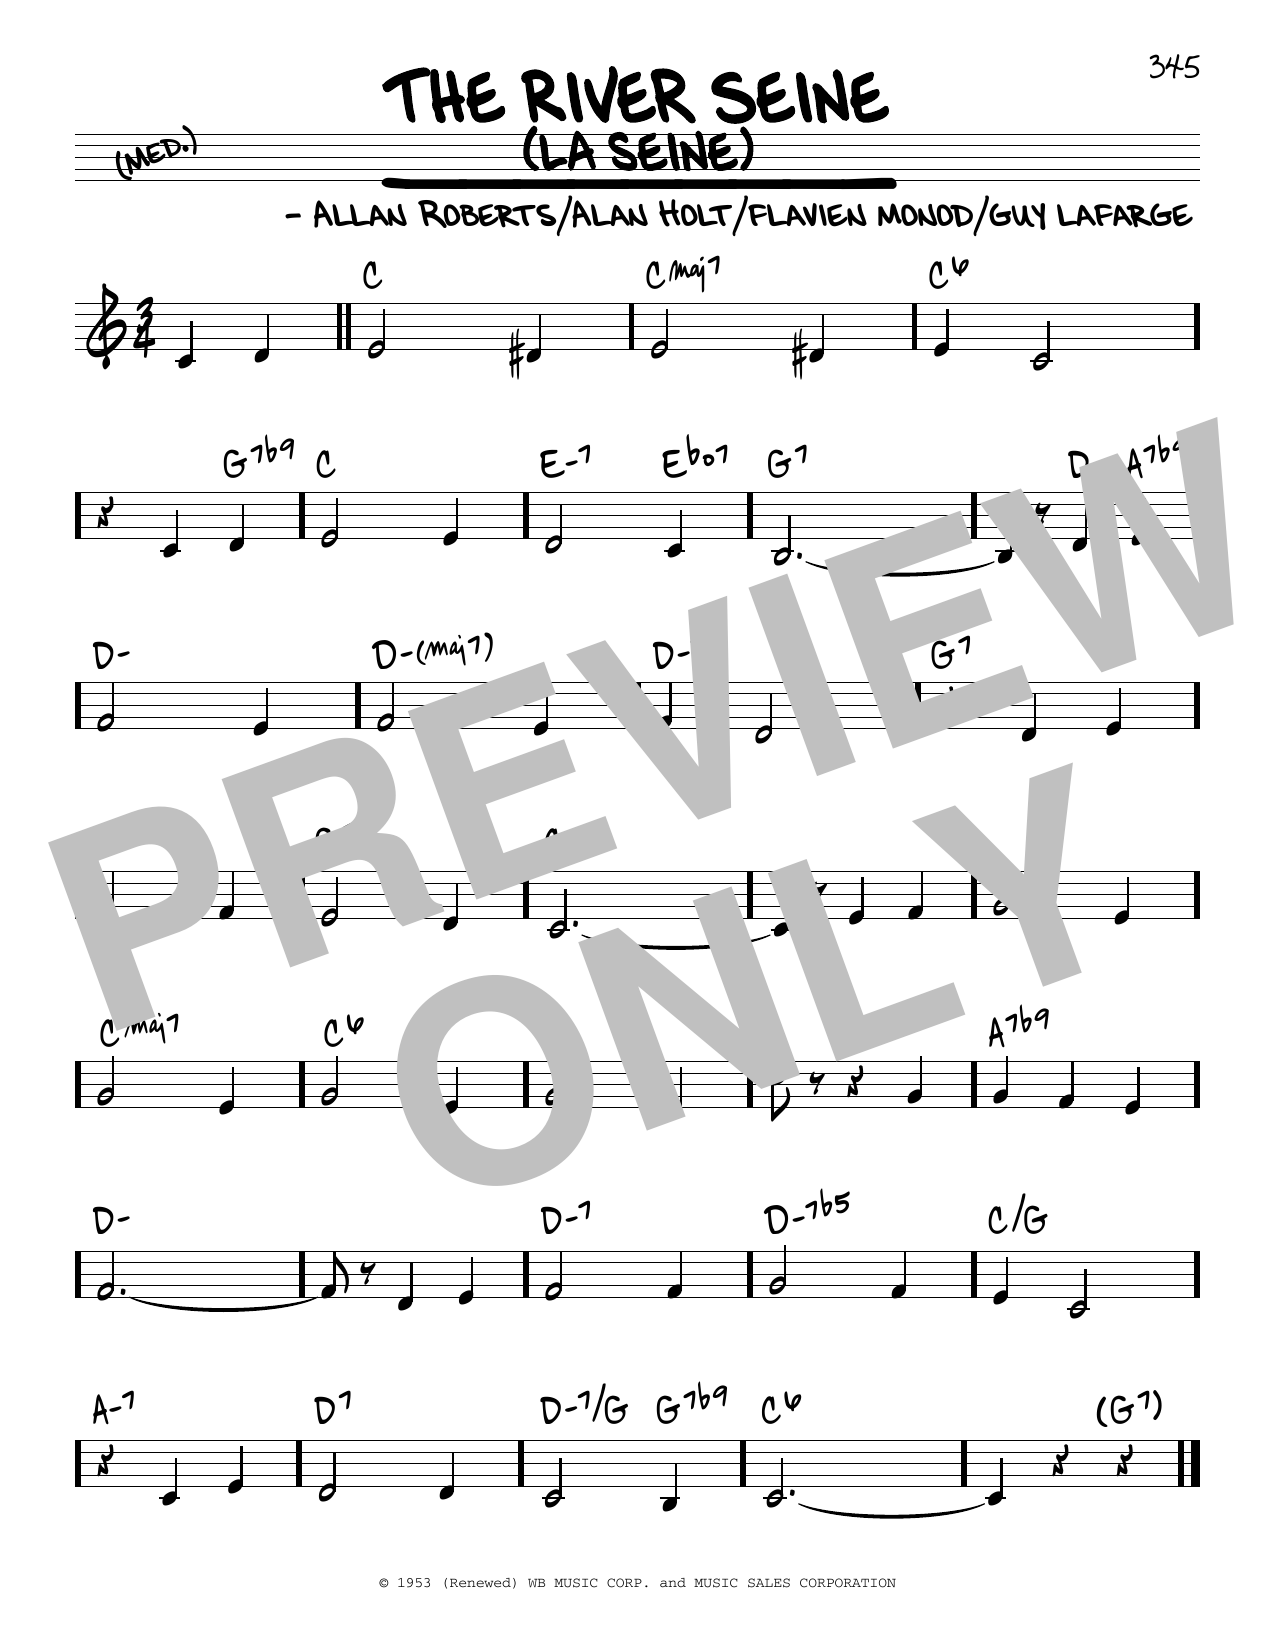 Allan Roberts The River Seine (La Seine) sheet music notes and chords. Download Printable PDF.